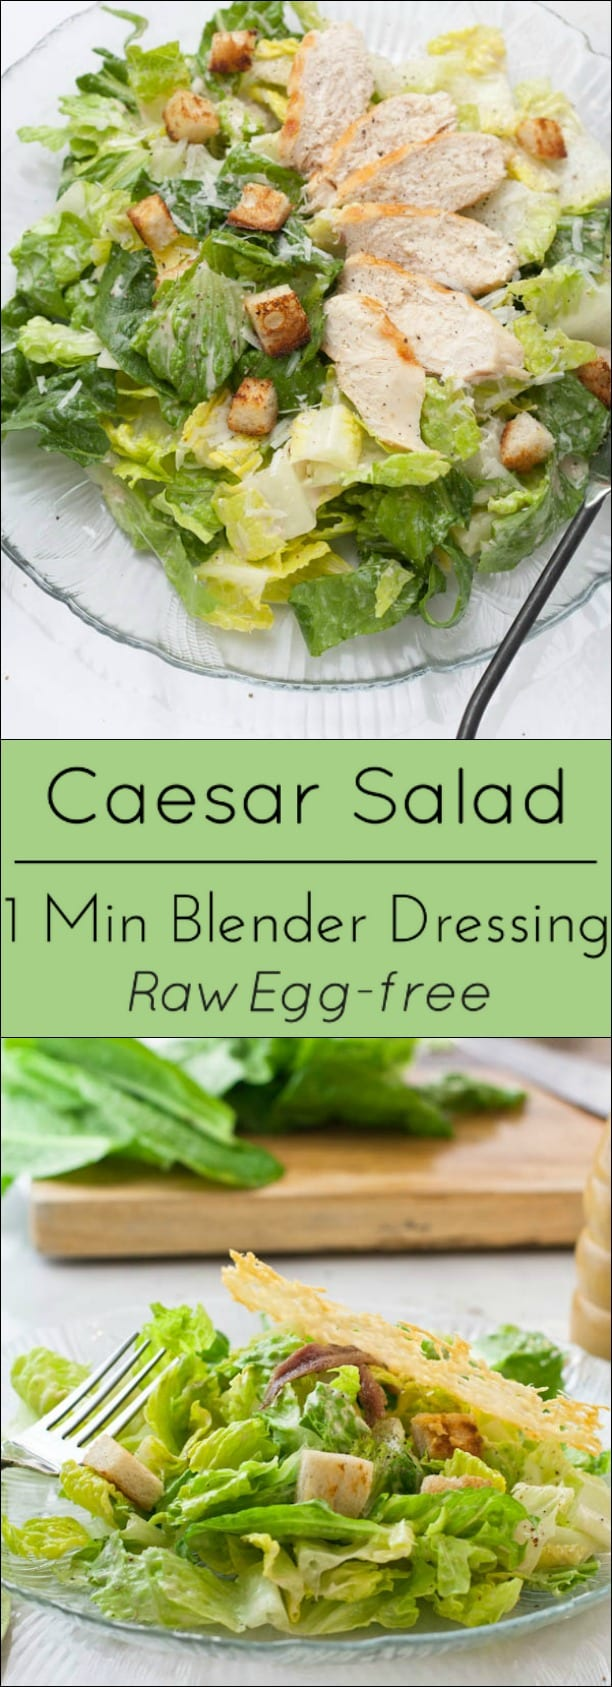 Classic Caesar Salad with 1 minute Blender dressing is raw egg free, gluten free and low carb.